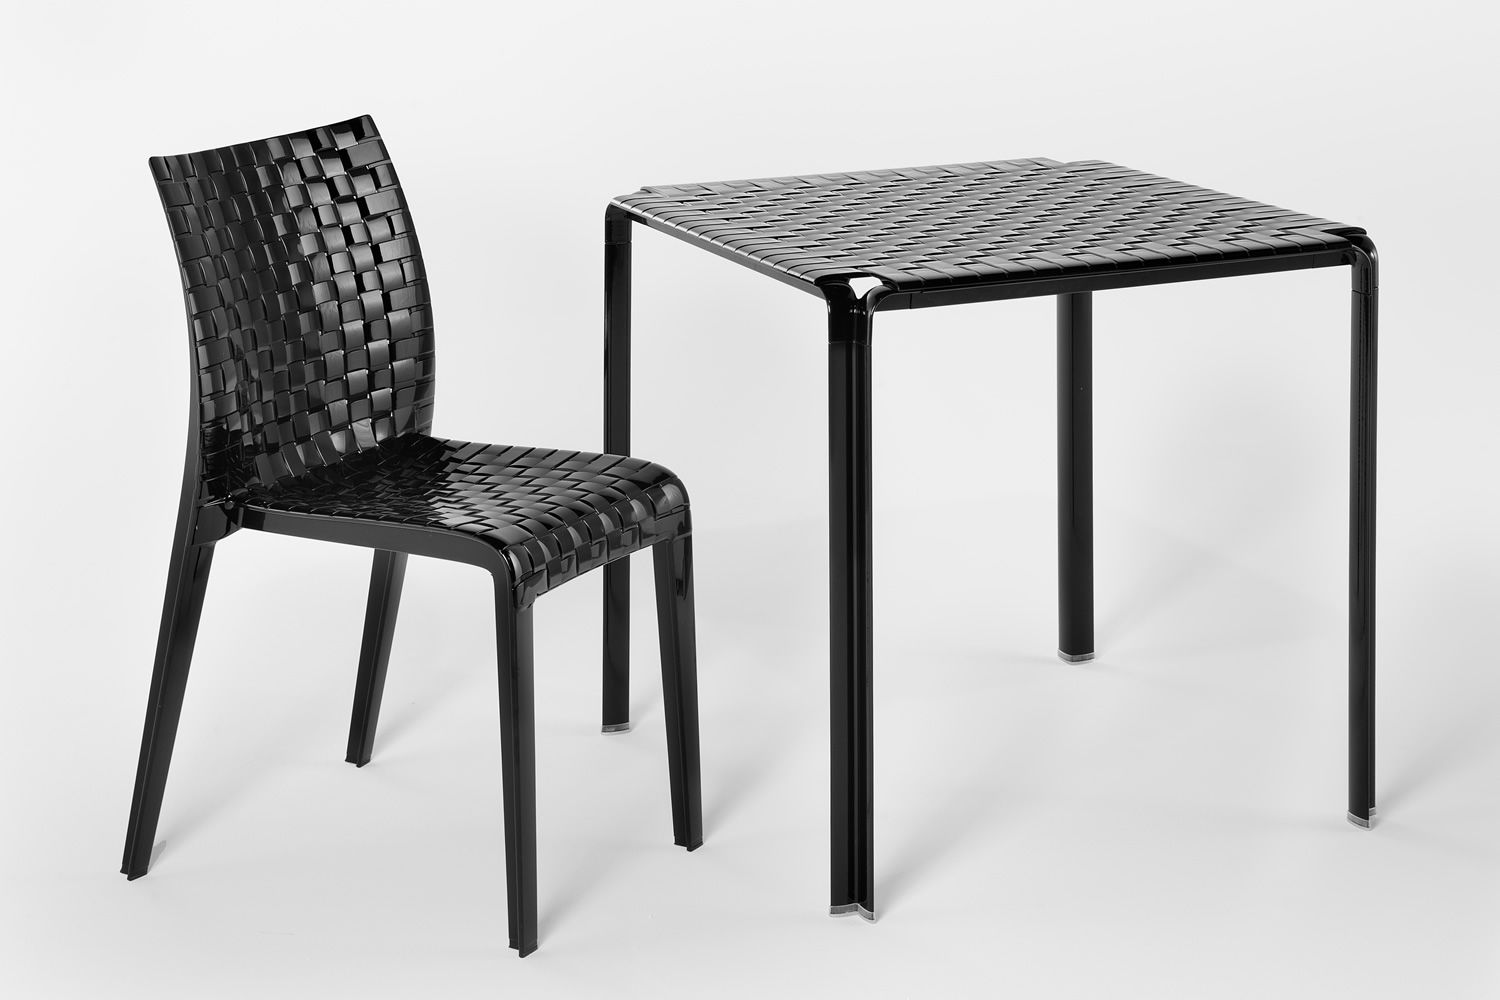 Superb Ami Ami Table | Metal Table With Black Polycarbonate Top Matching With Ami  Ami Chair